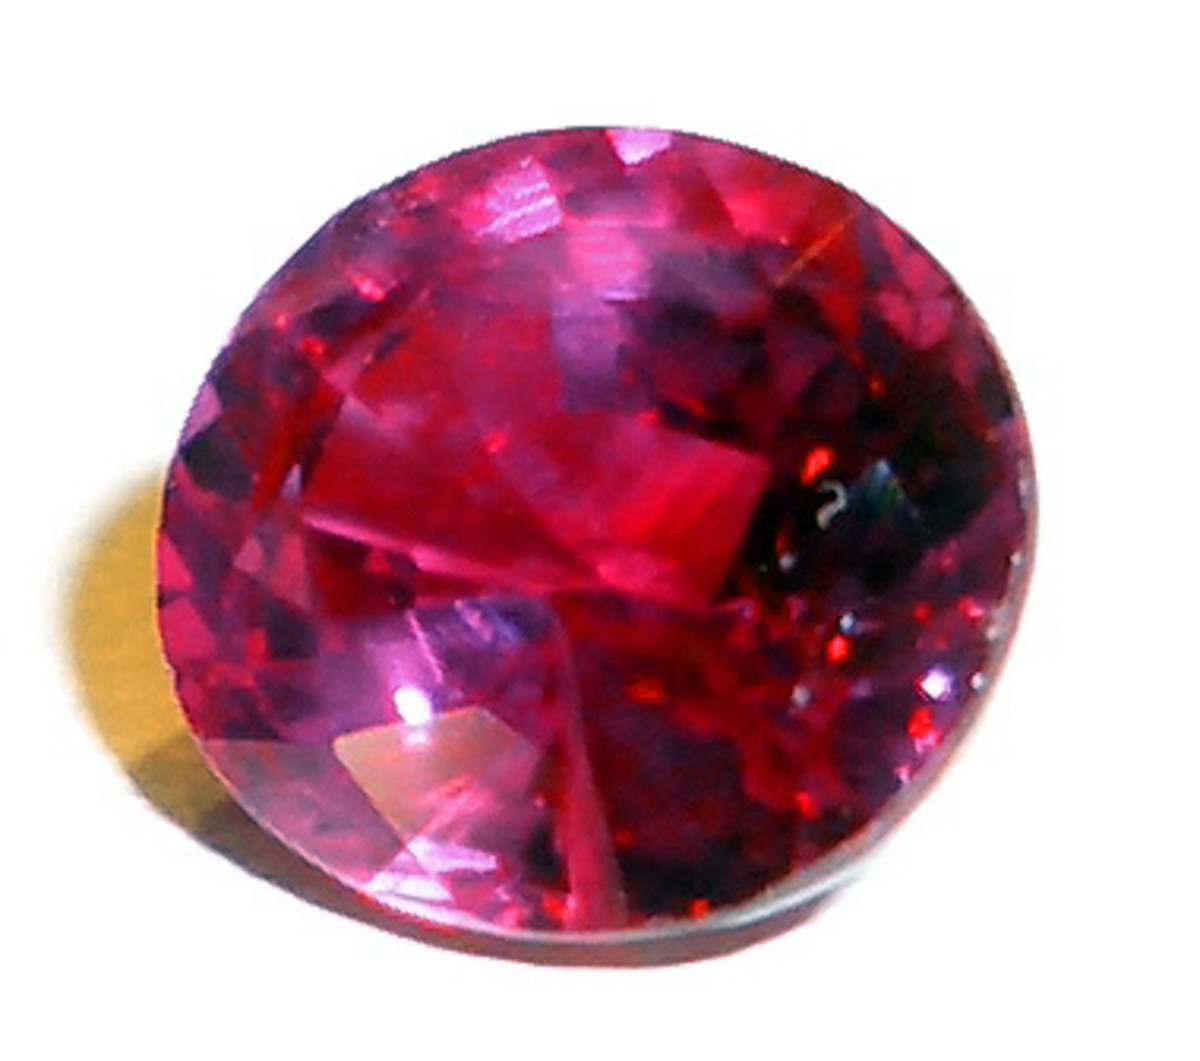 Rubies | How To Choose a Ruby Precious Stone